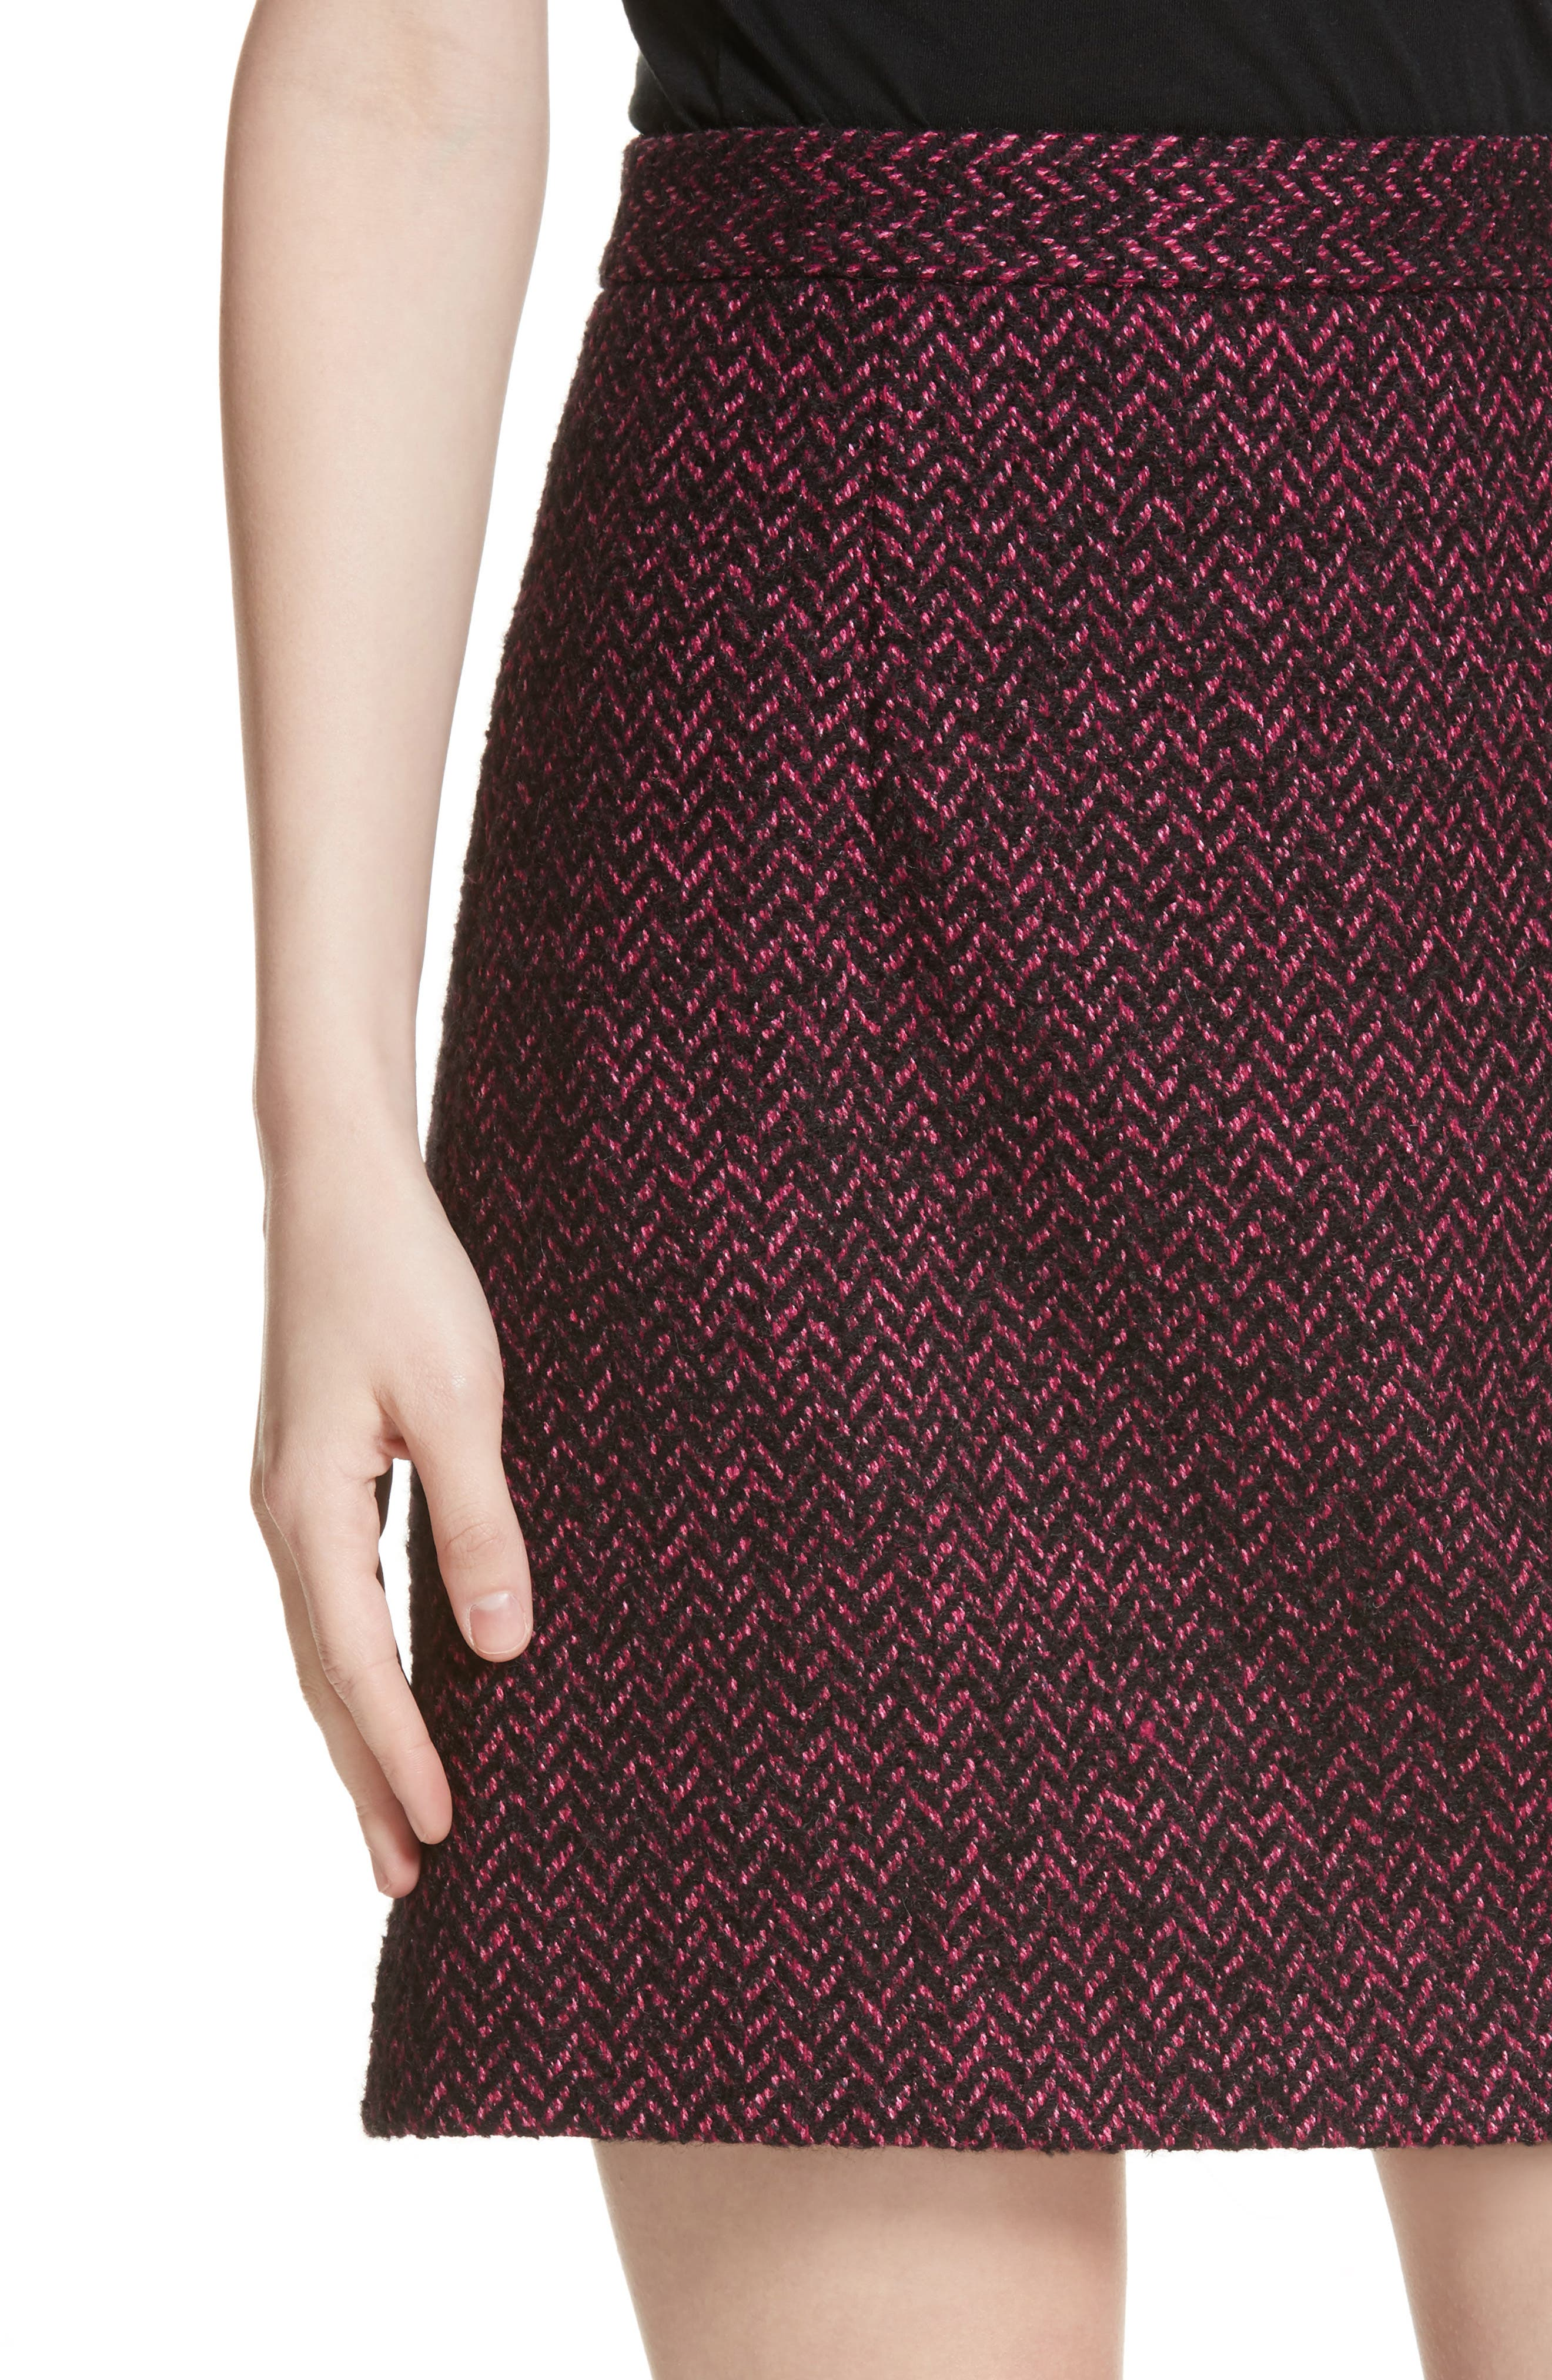 Herringbone Wool Blend A-Line Skirt,                             Alternate thumbnail 4, color,                             500